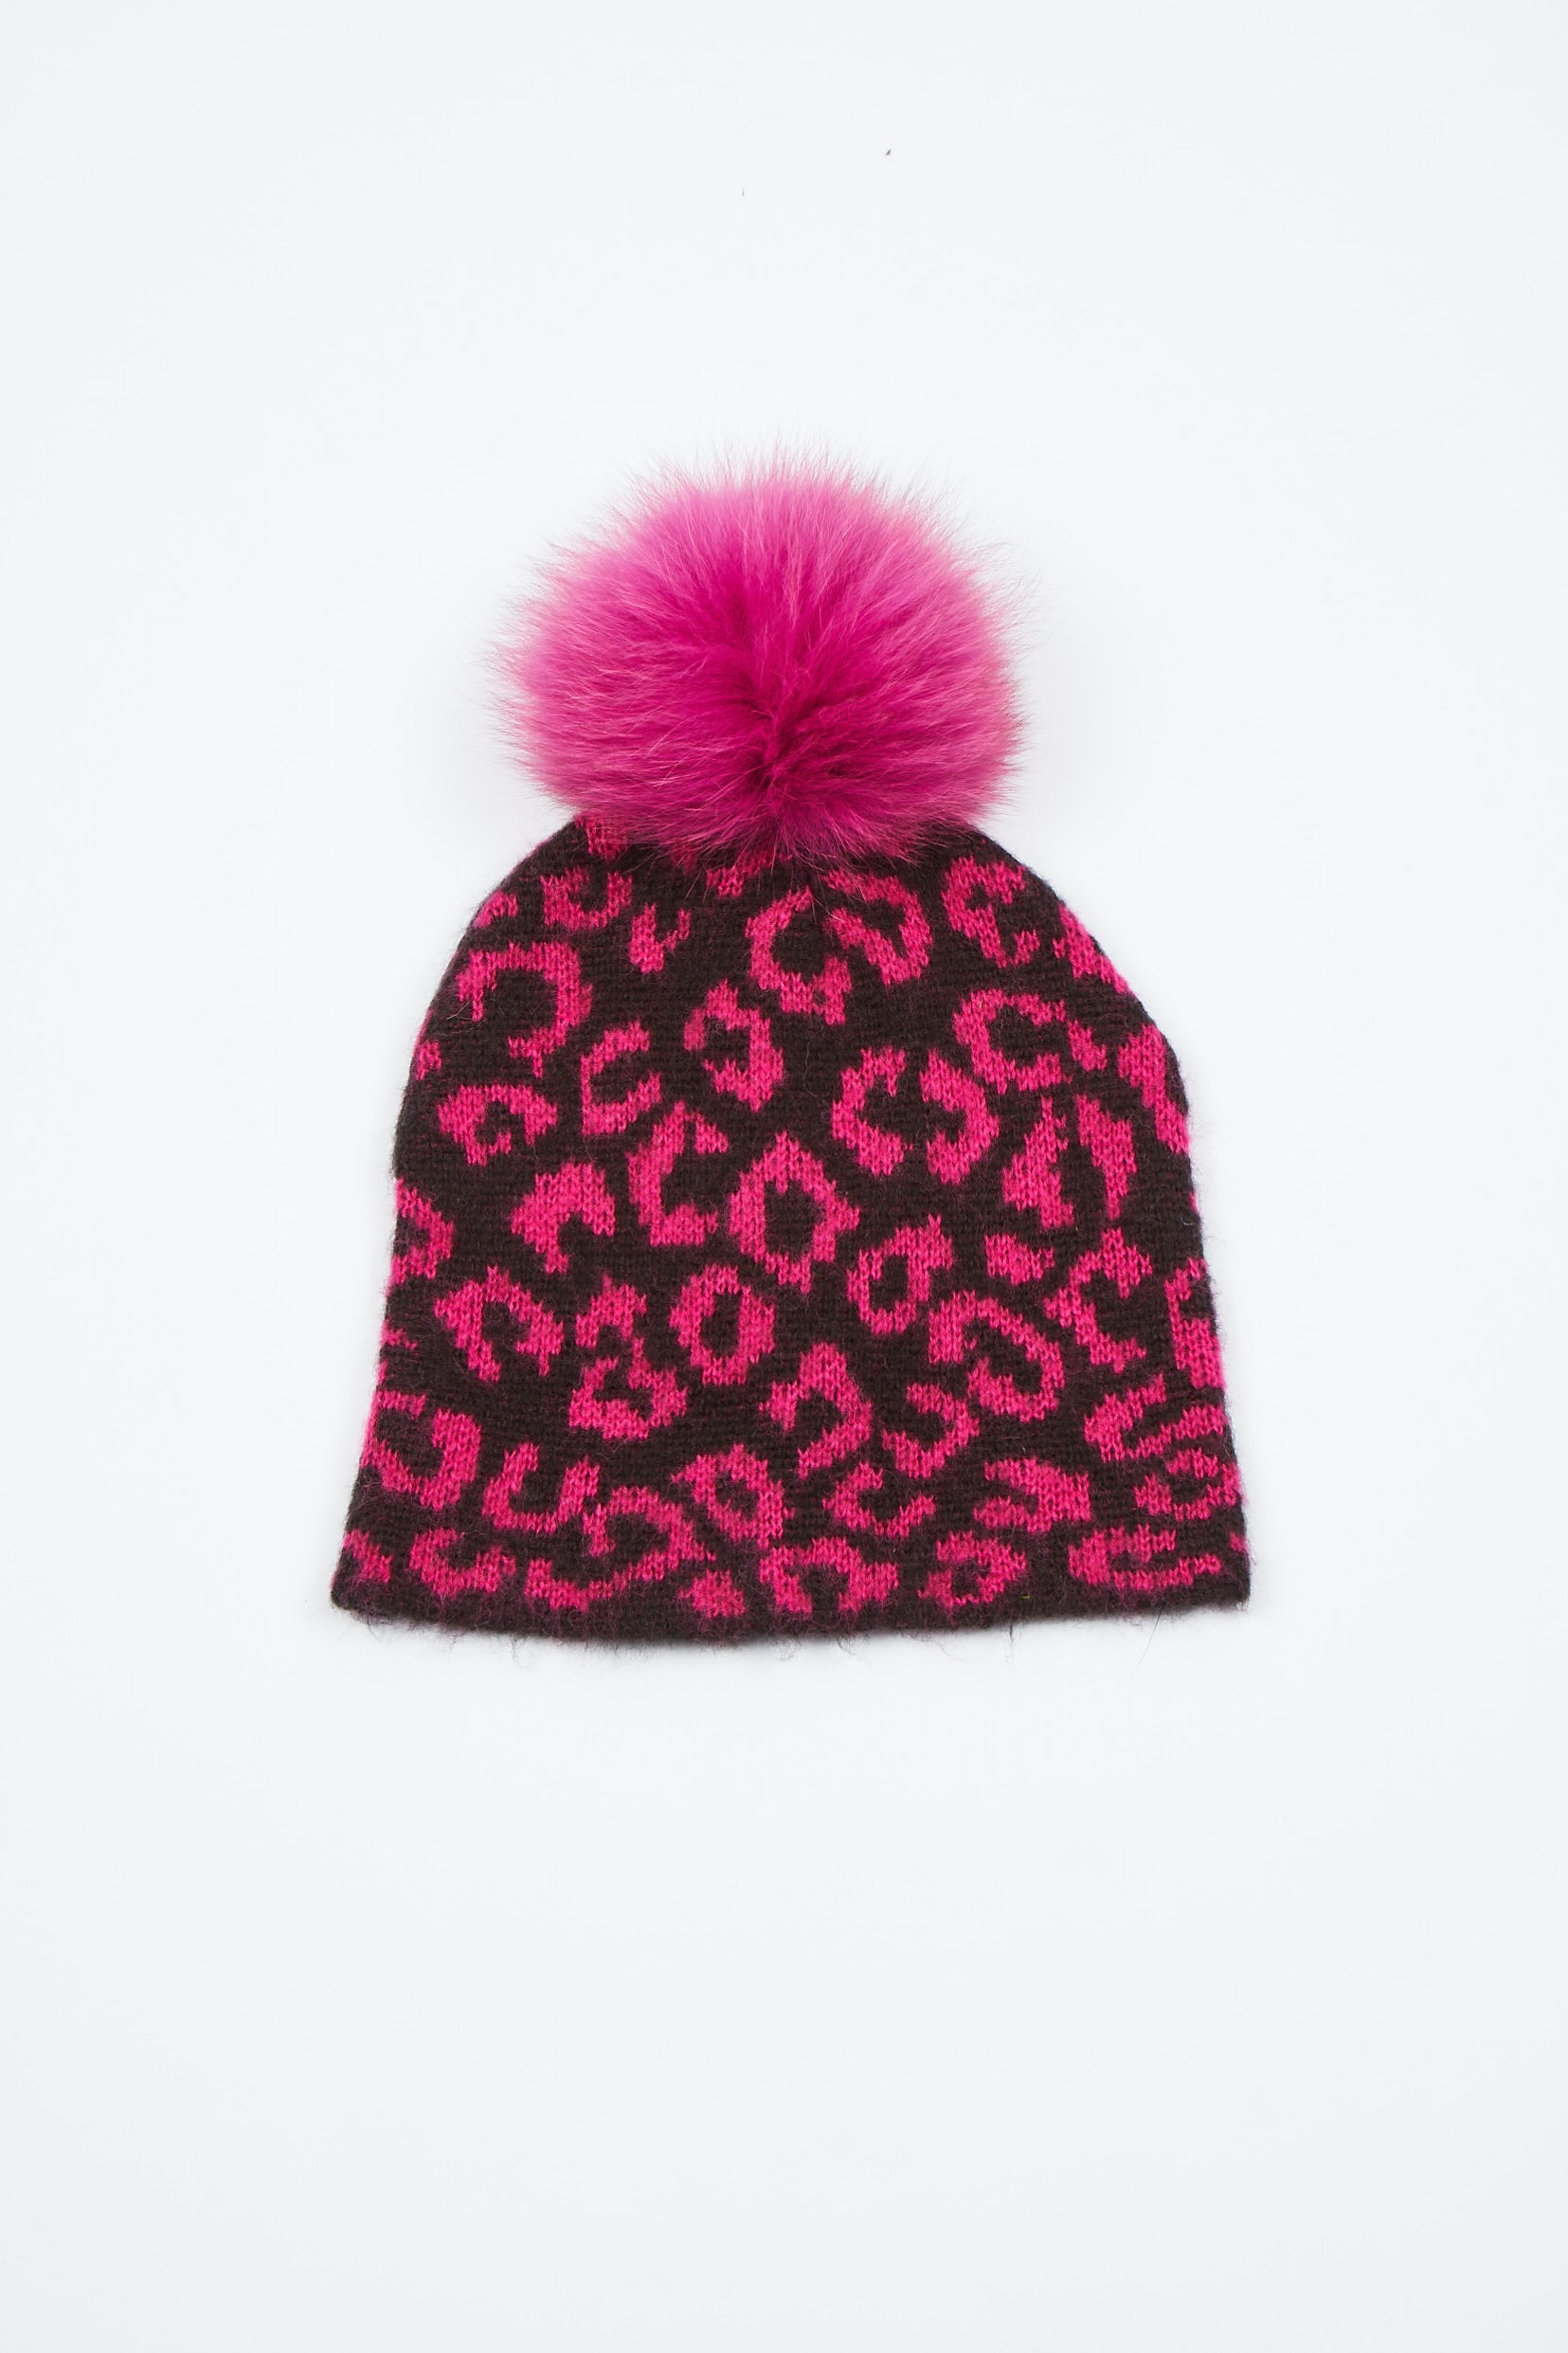 The Lunar Leopard Hat - Hot Pink/Black Animal